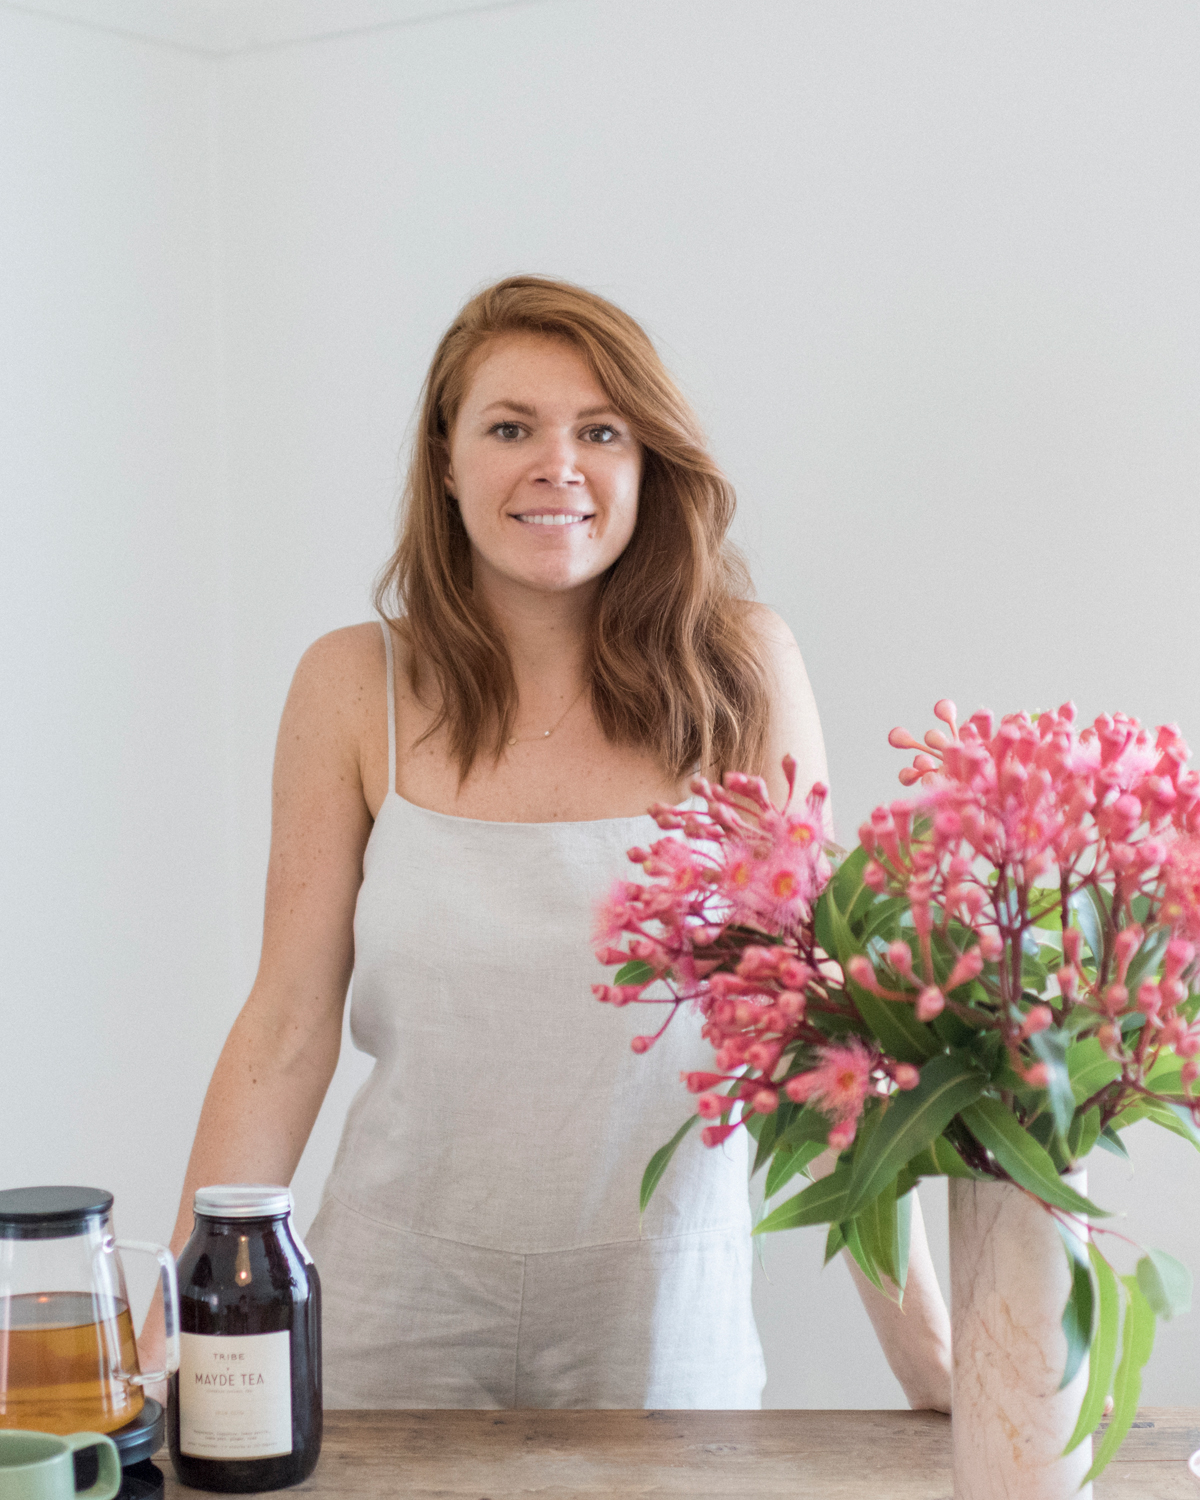 Tribe Natural Beauty owner, Nicole Stubbs